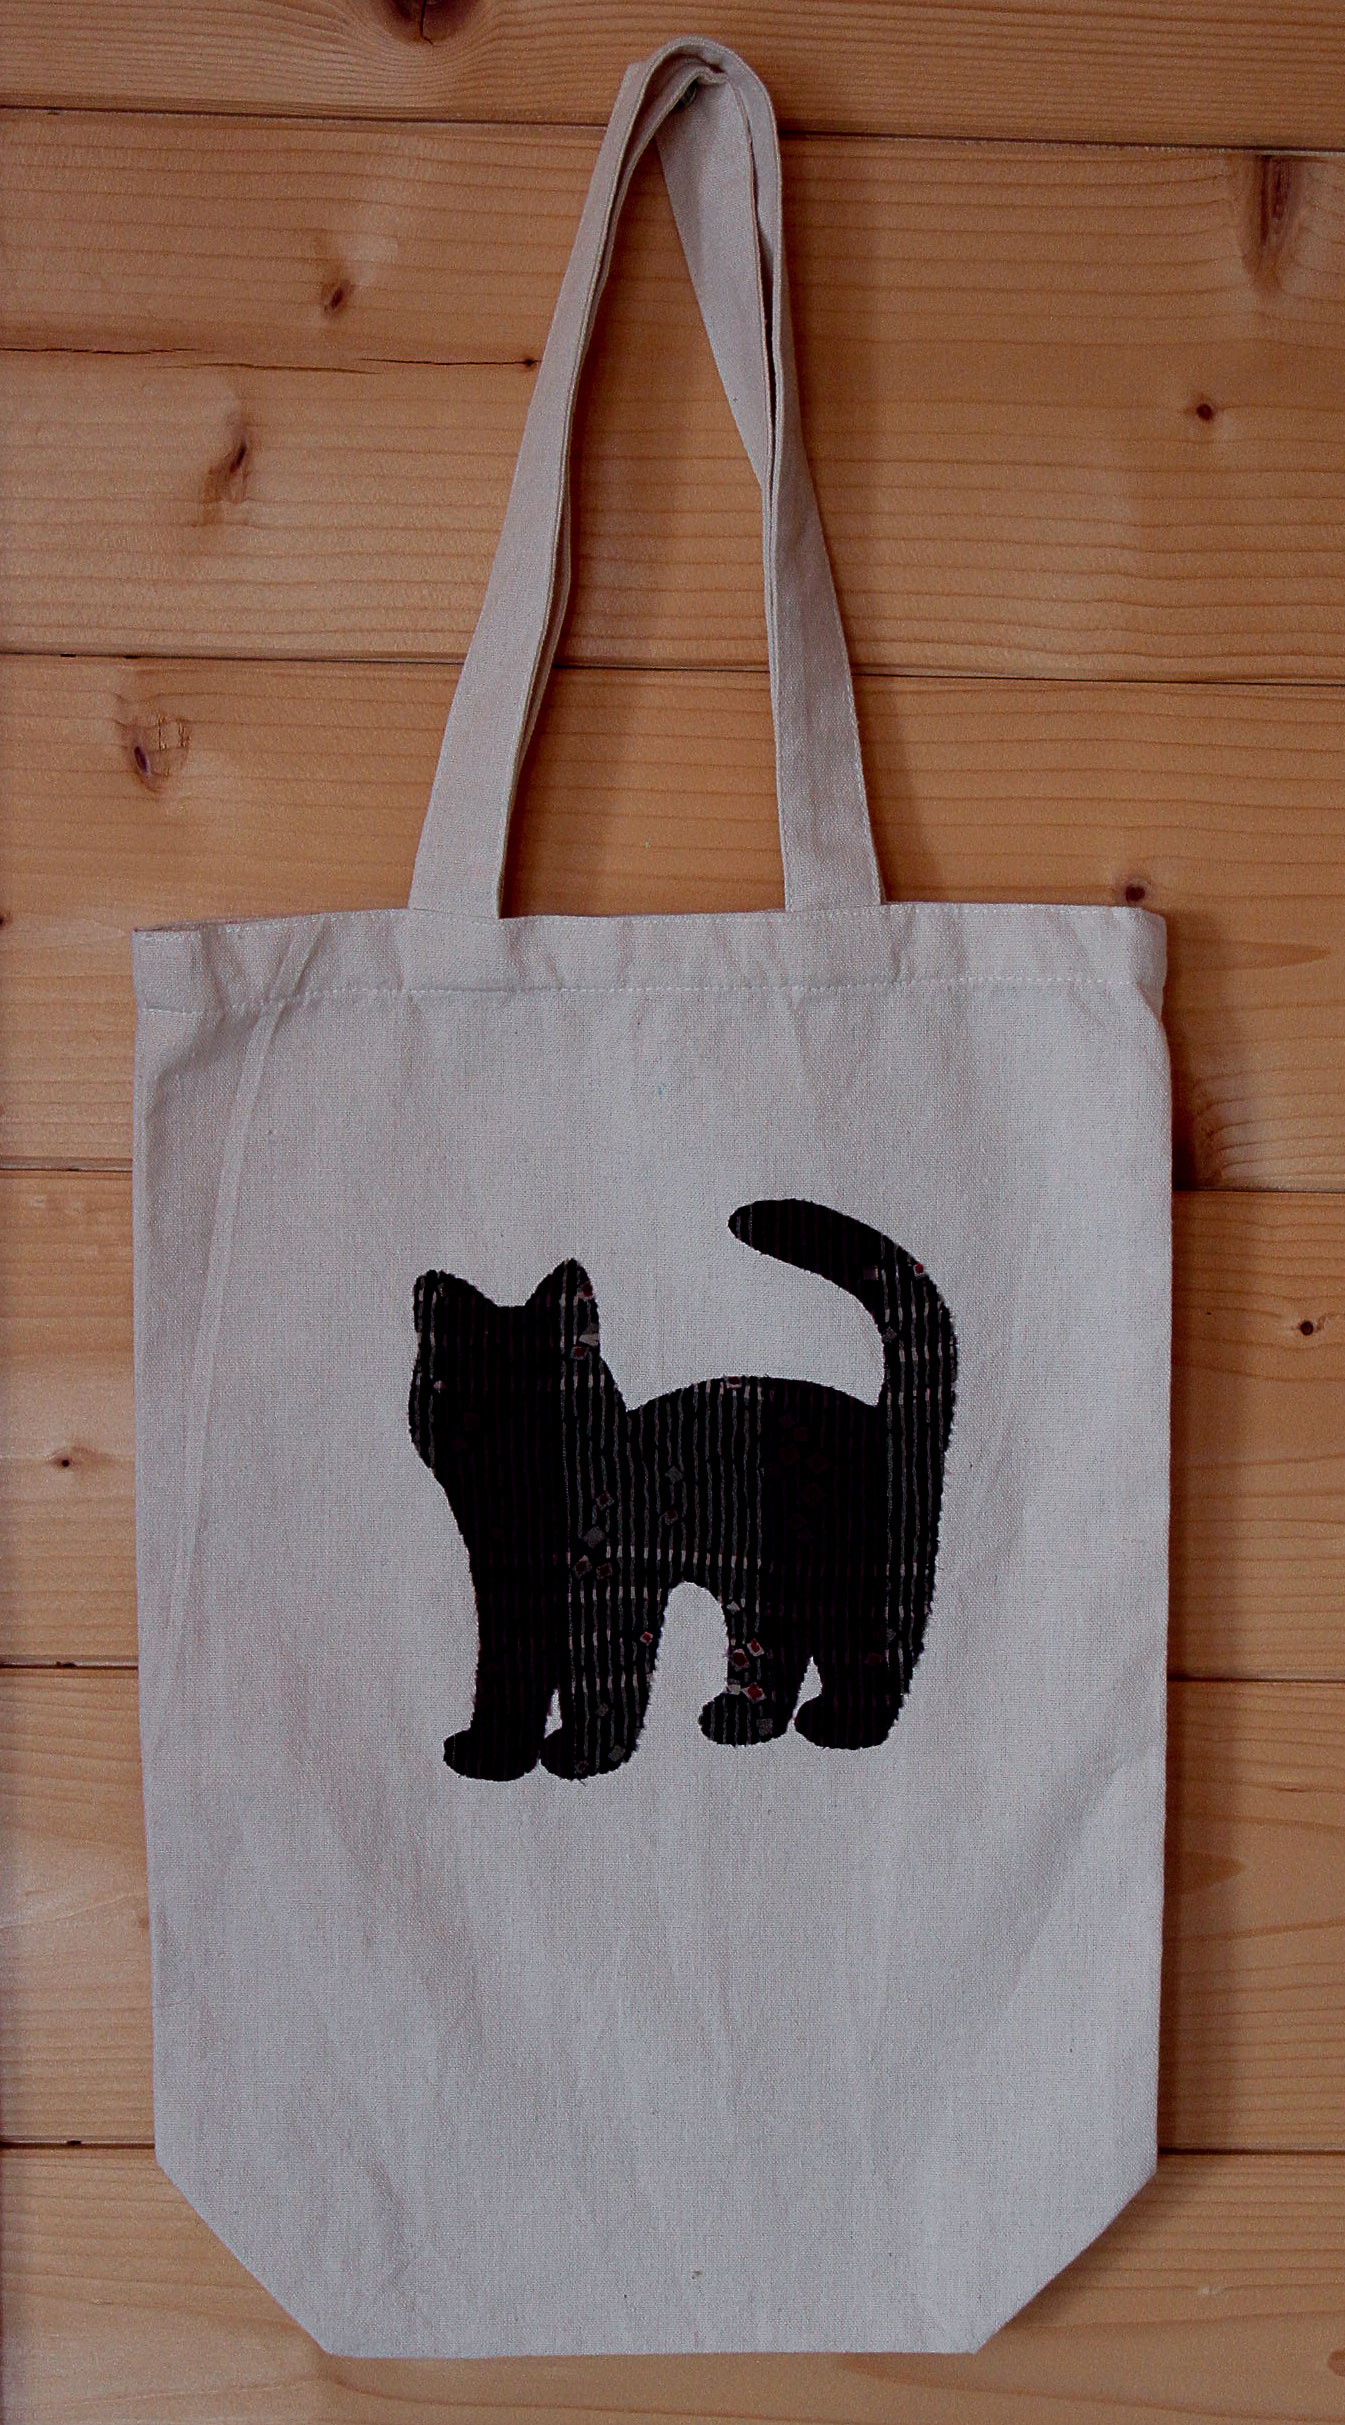 Tote bag with cat design made from kimono